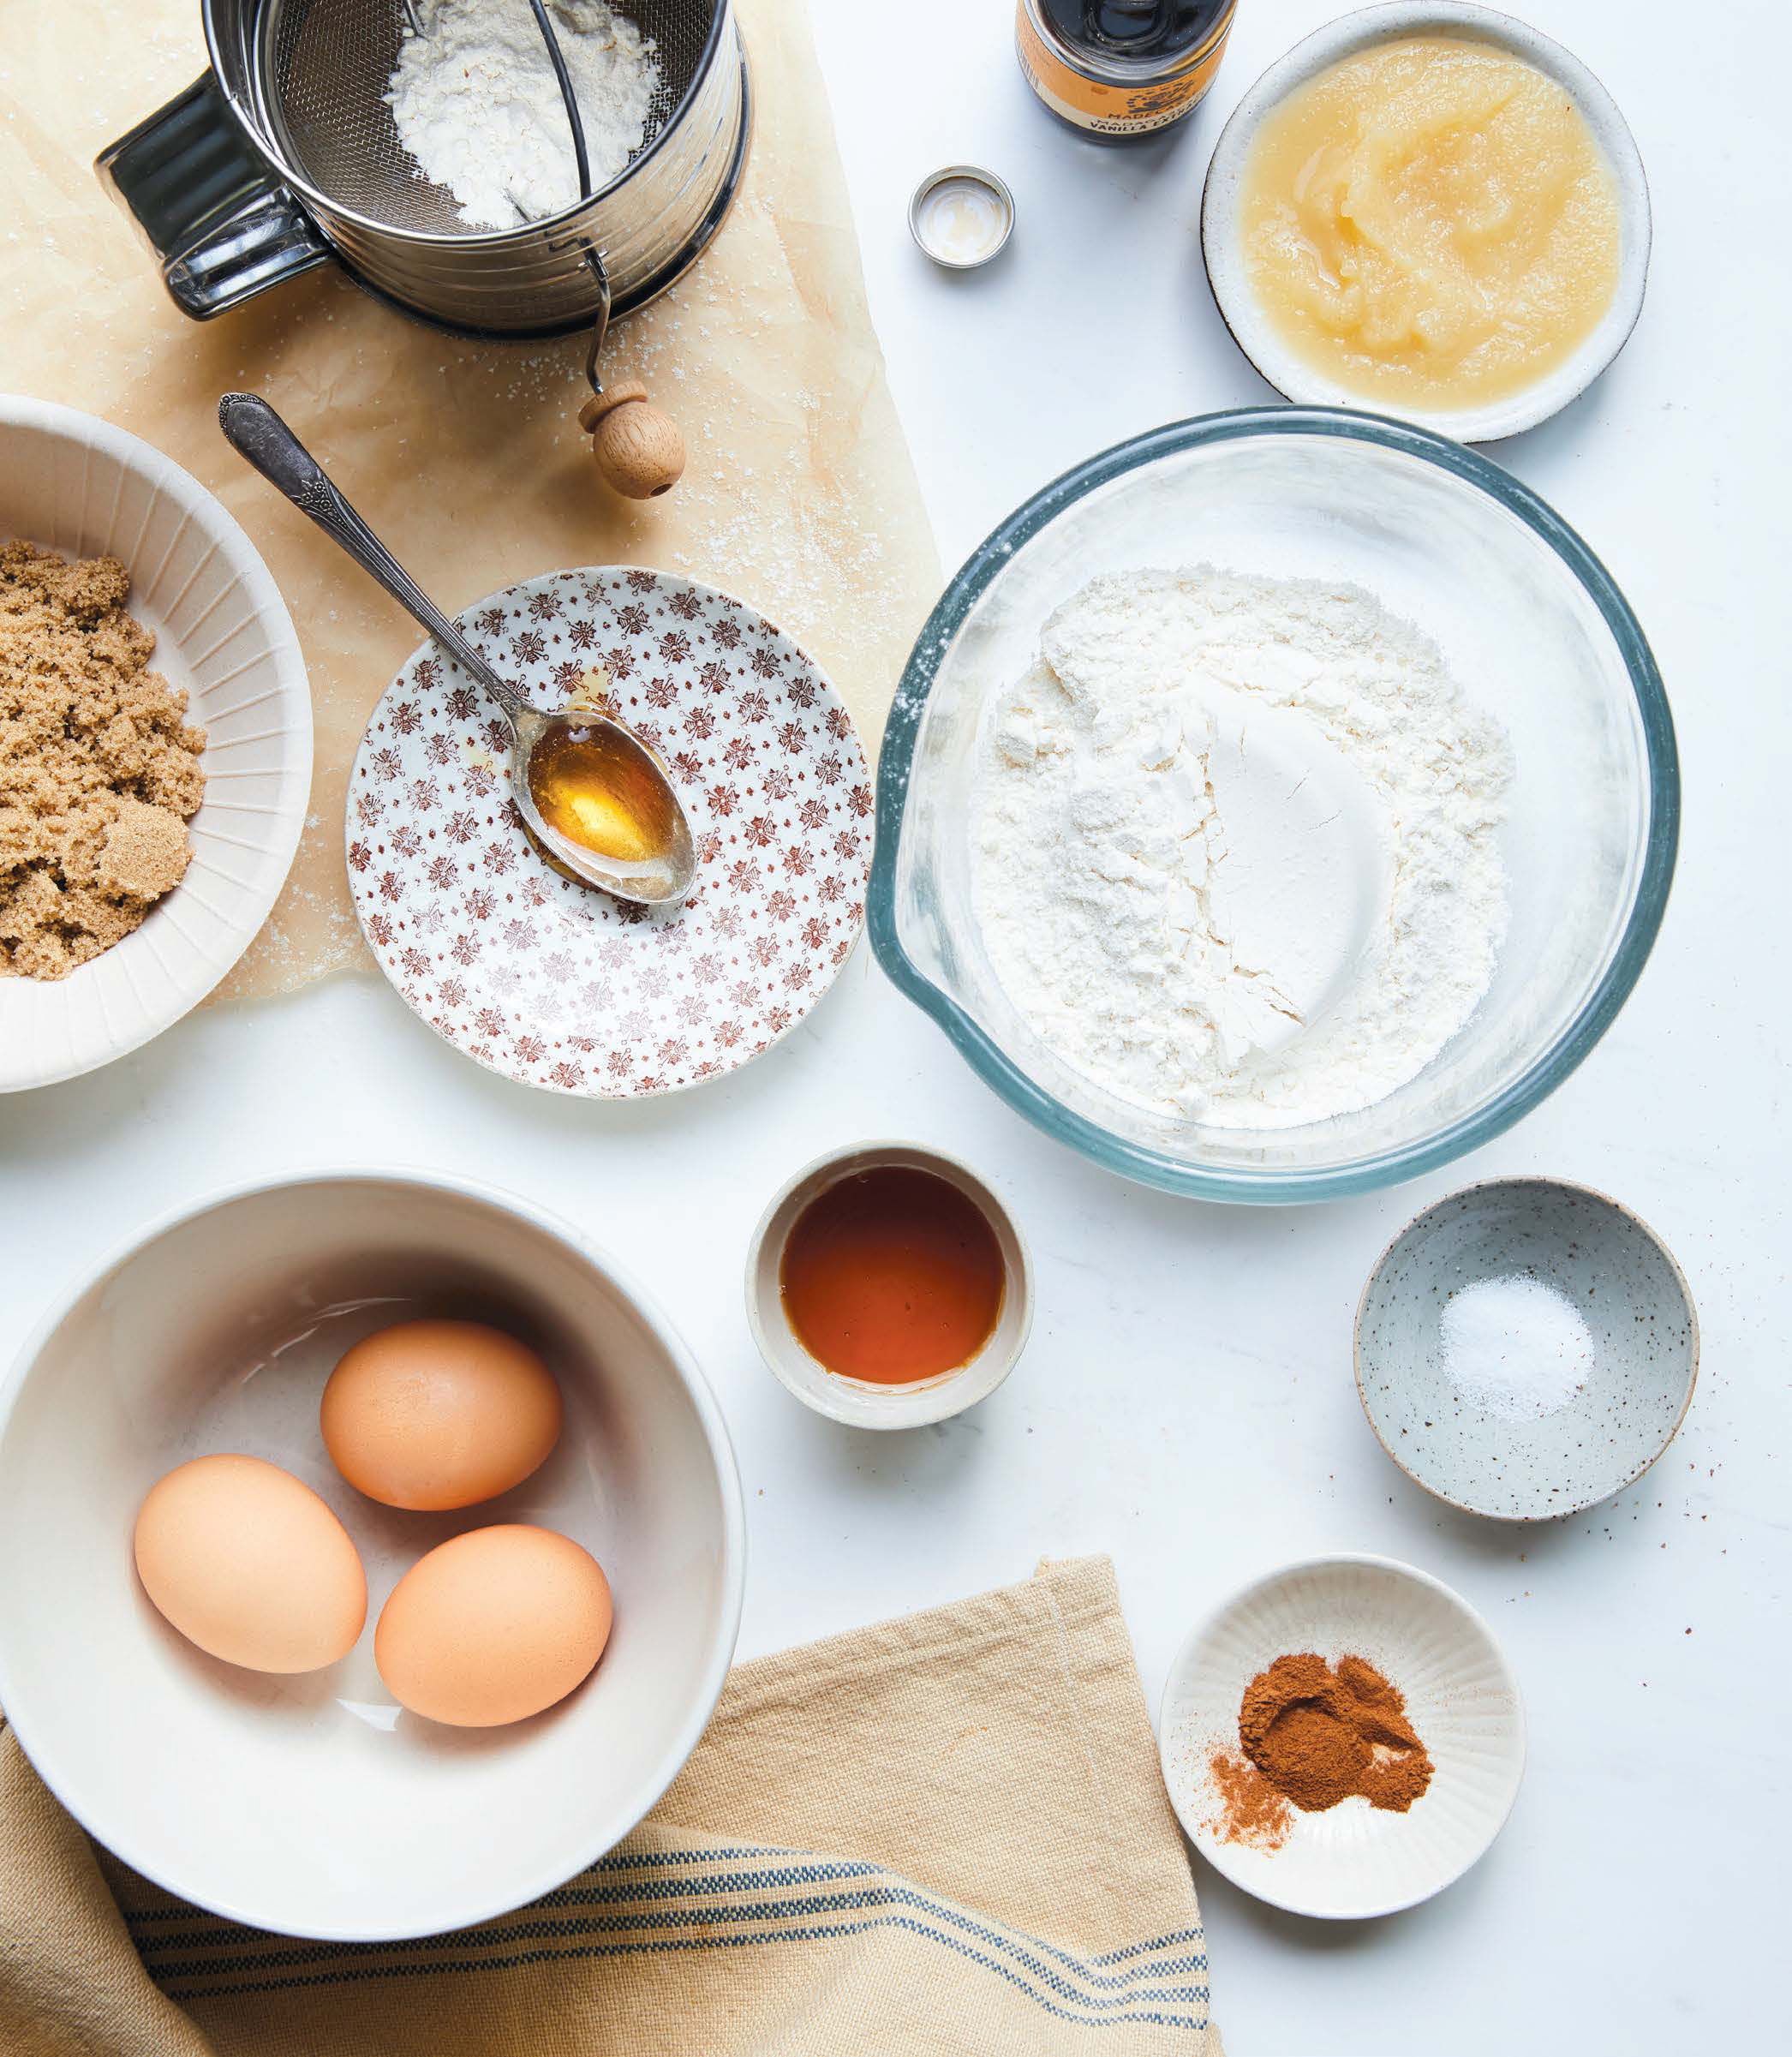 ingredients for cinnamon spice cake